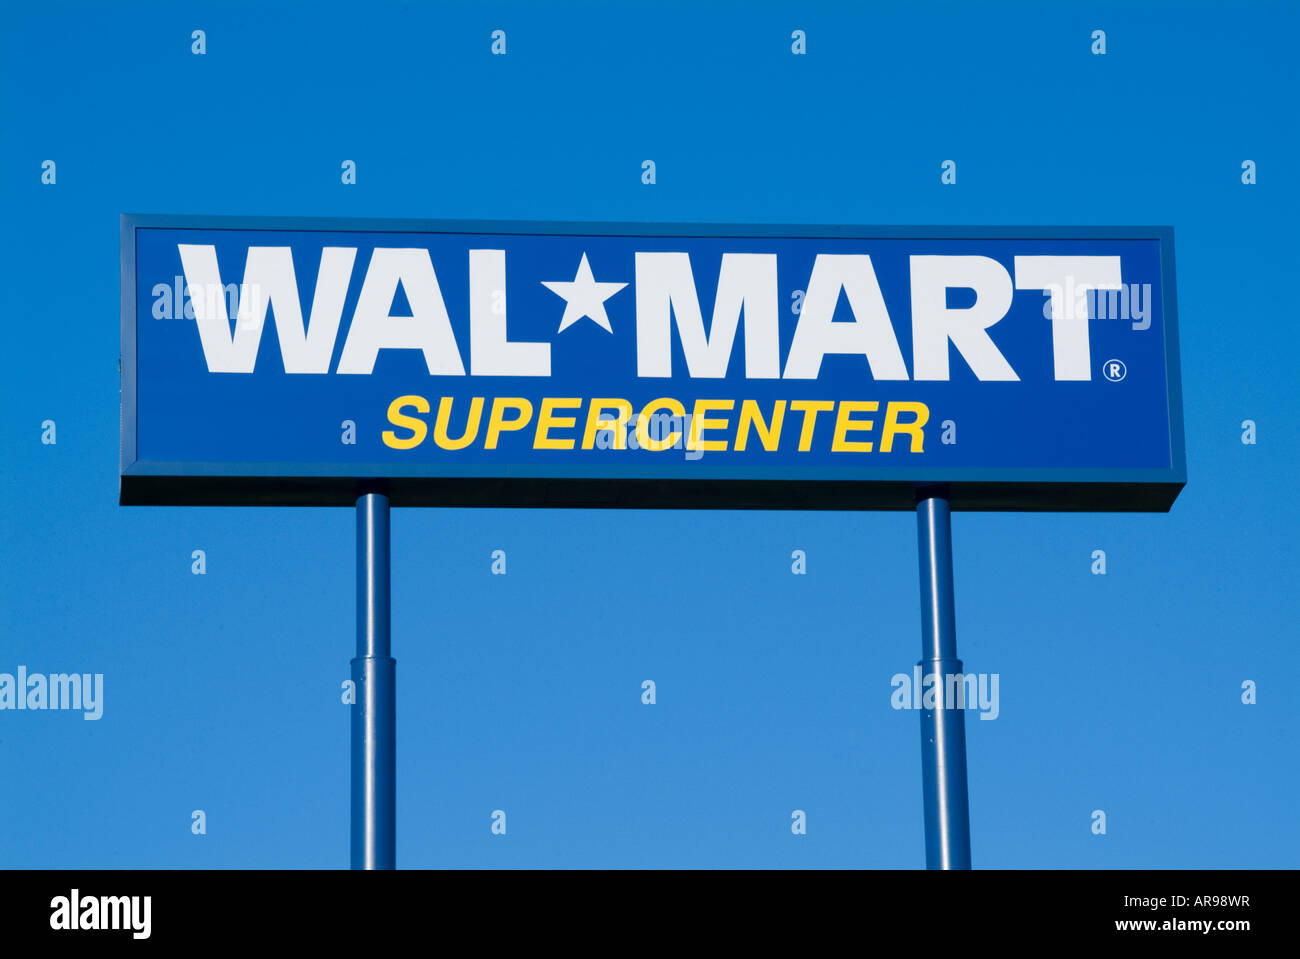 wal marts global expansions Wal-martsglobalexpansioncdq-221009 - why did it purchase wal-mart's global expansion 1 what strategy is wal-mart pursuing —a global strategy.